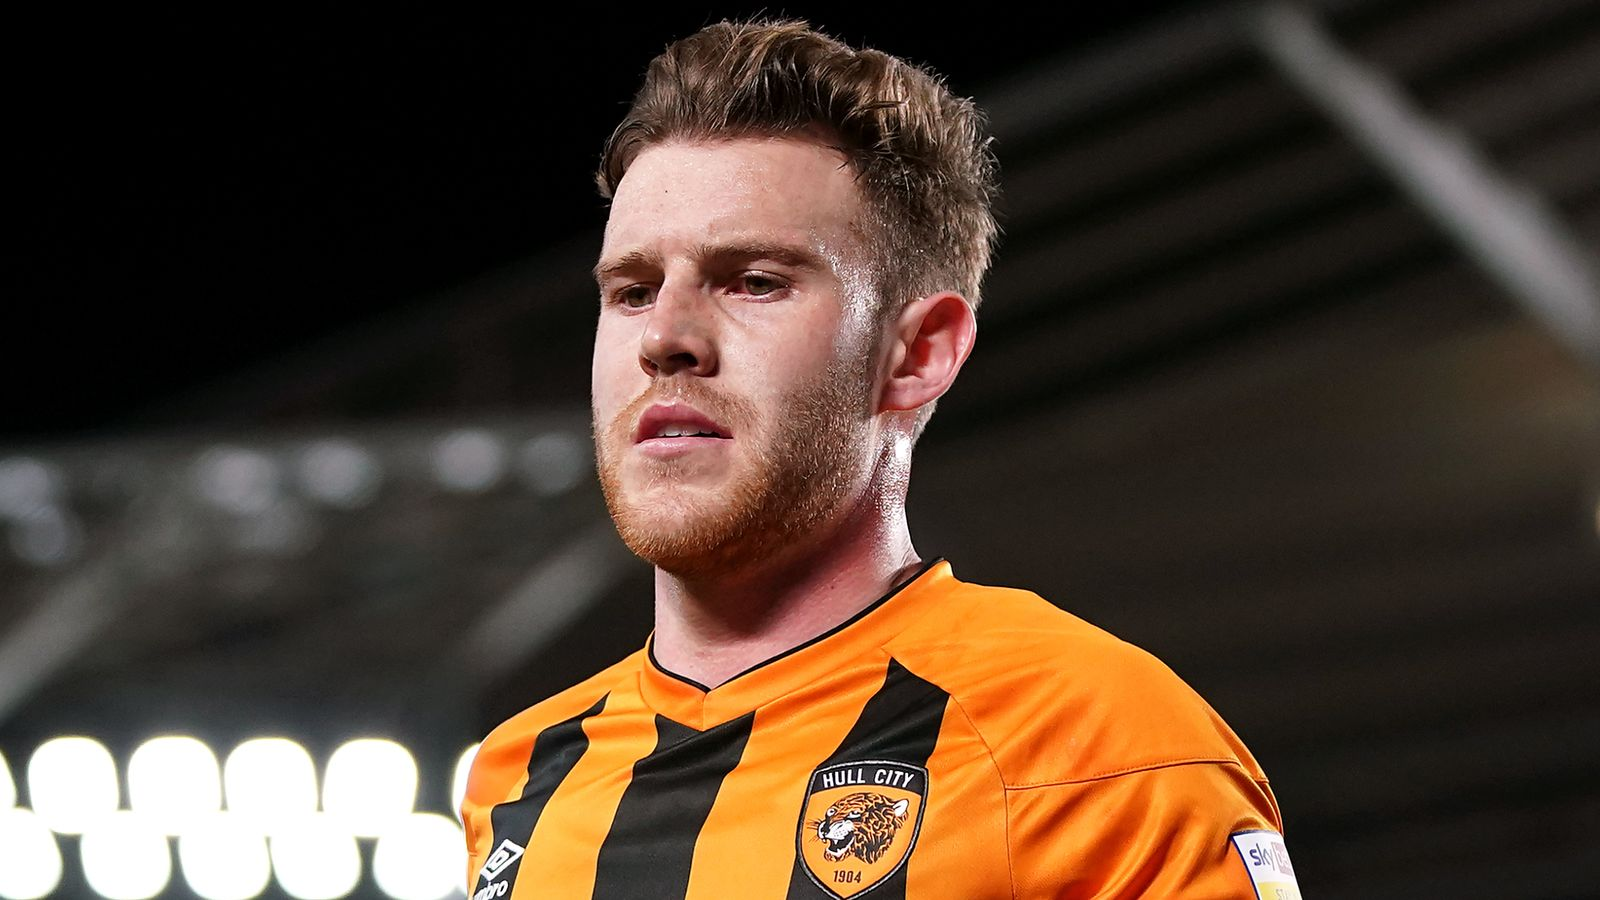 League One highlights and round-up: Hull held, Sunderland win